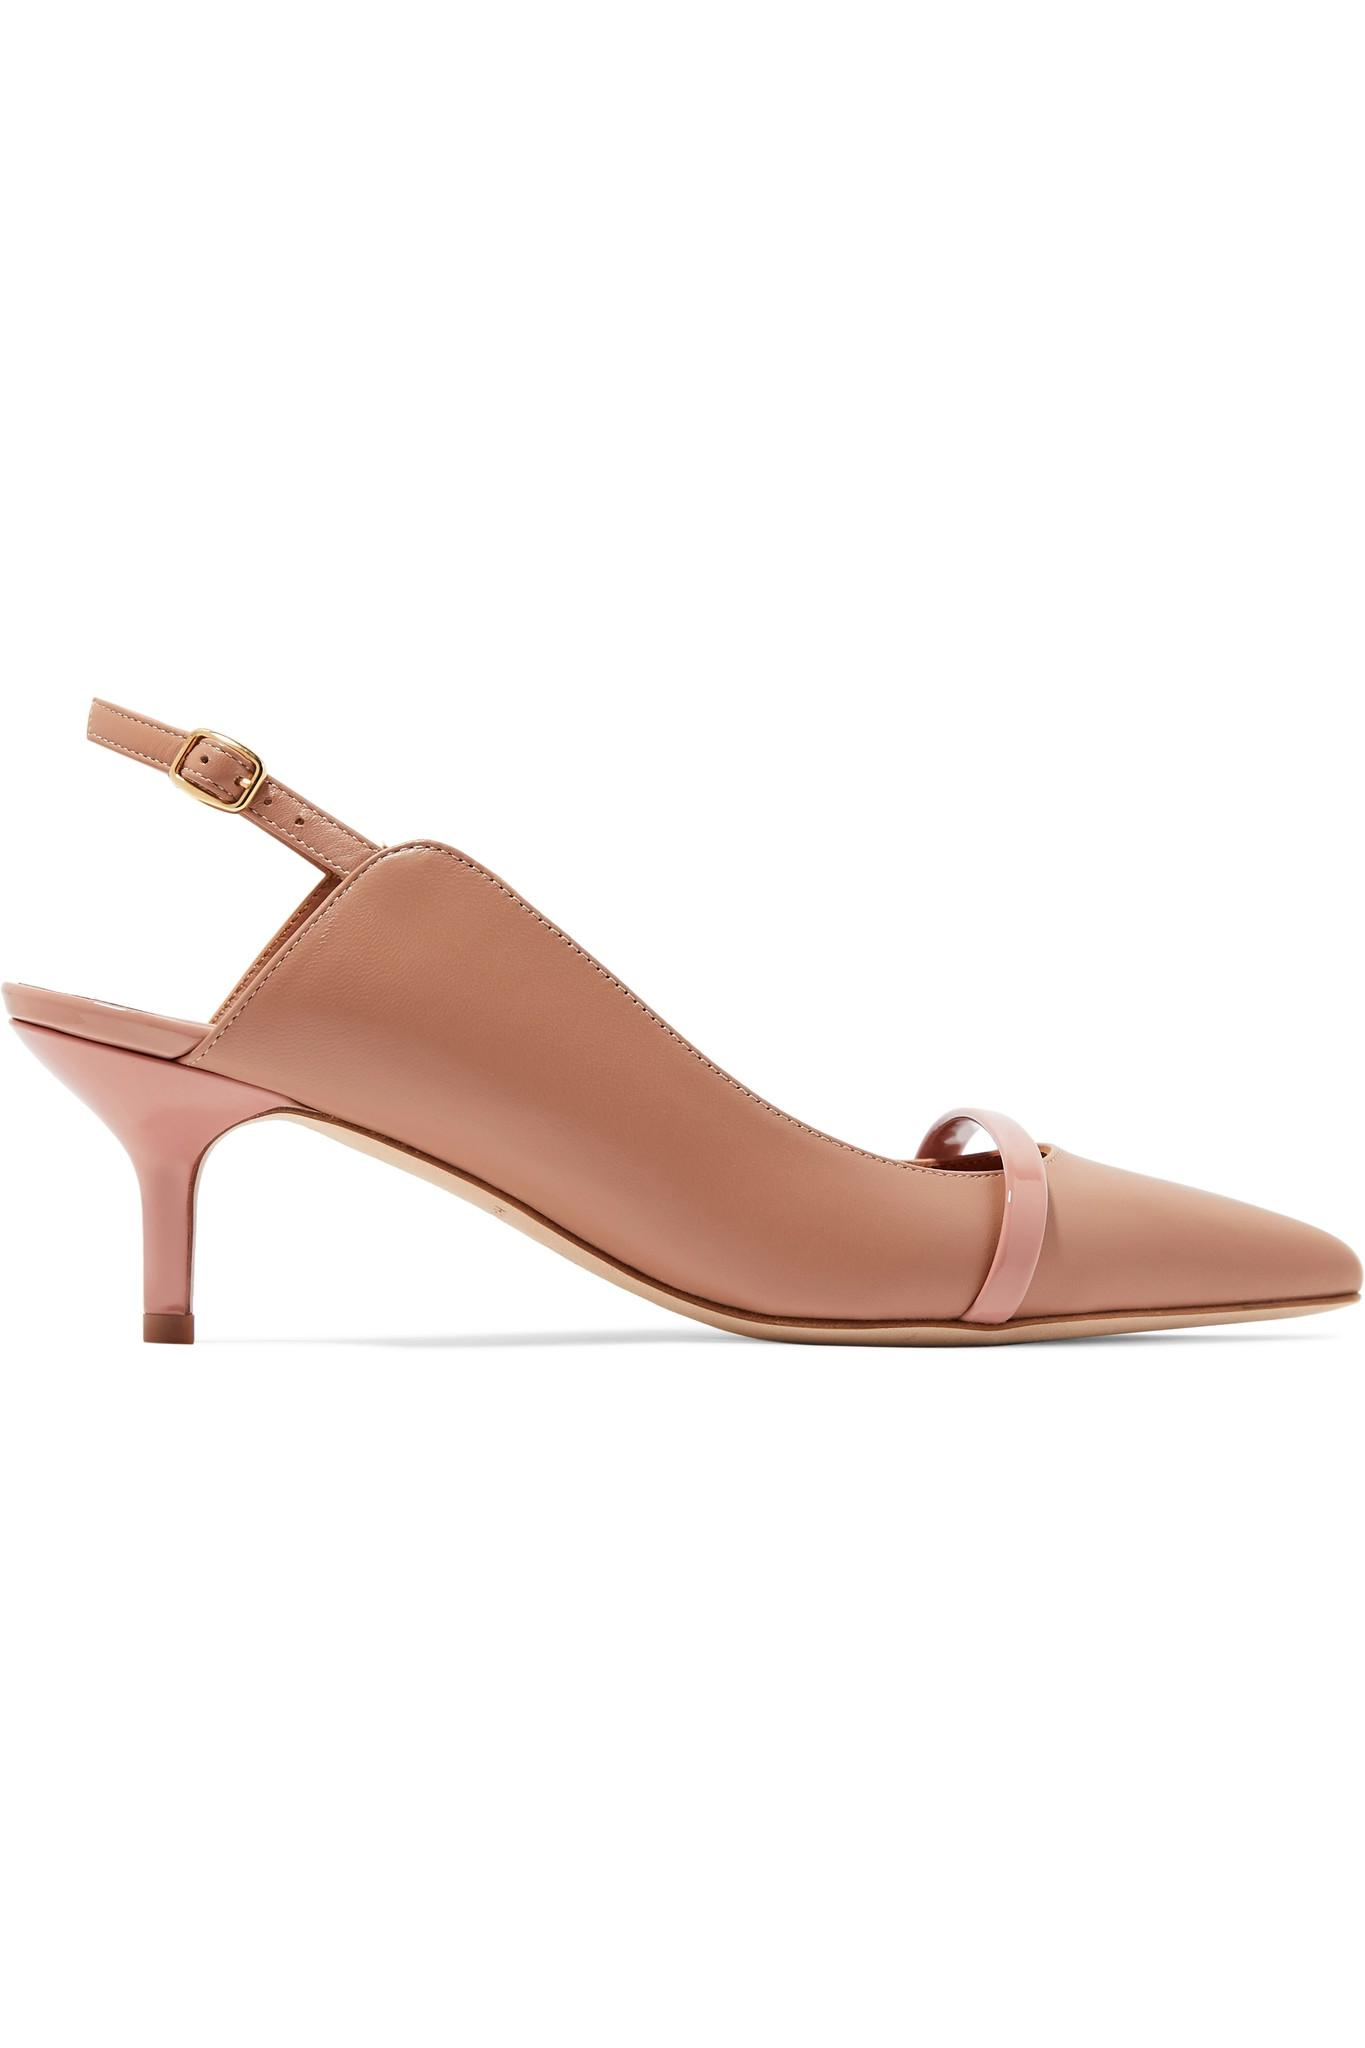 92dc6b51e Lyst - Malone Souliers Marion 45 Leather Slingback Pumps in Natural